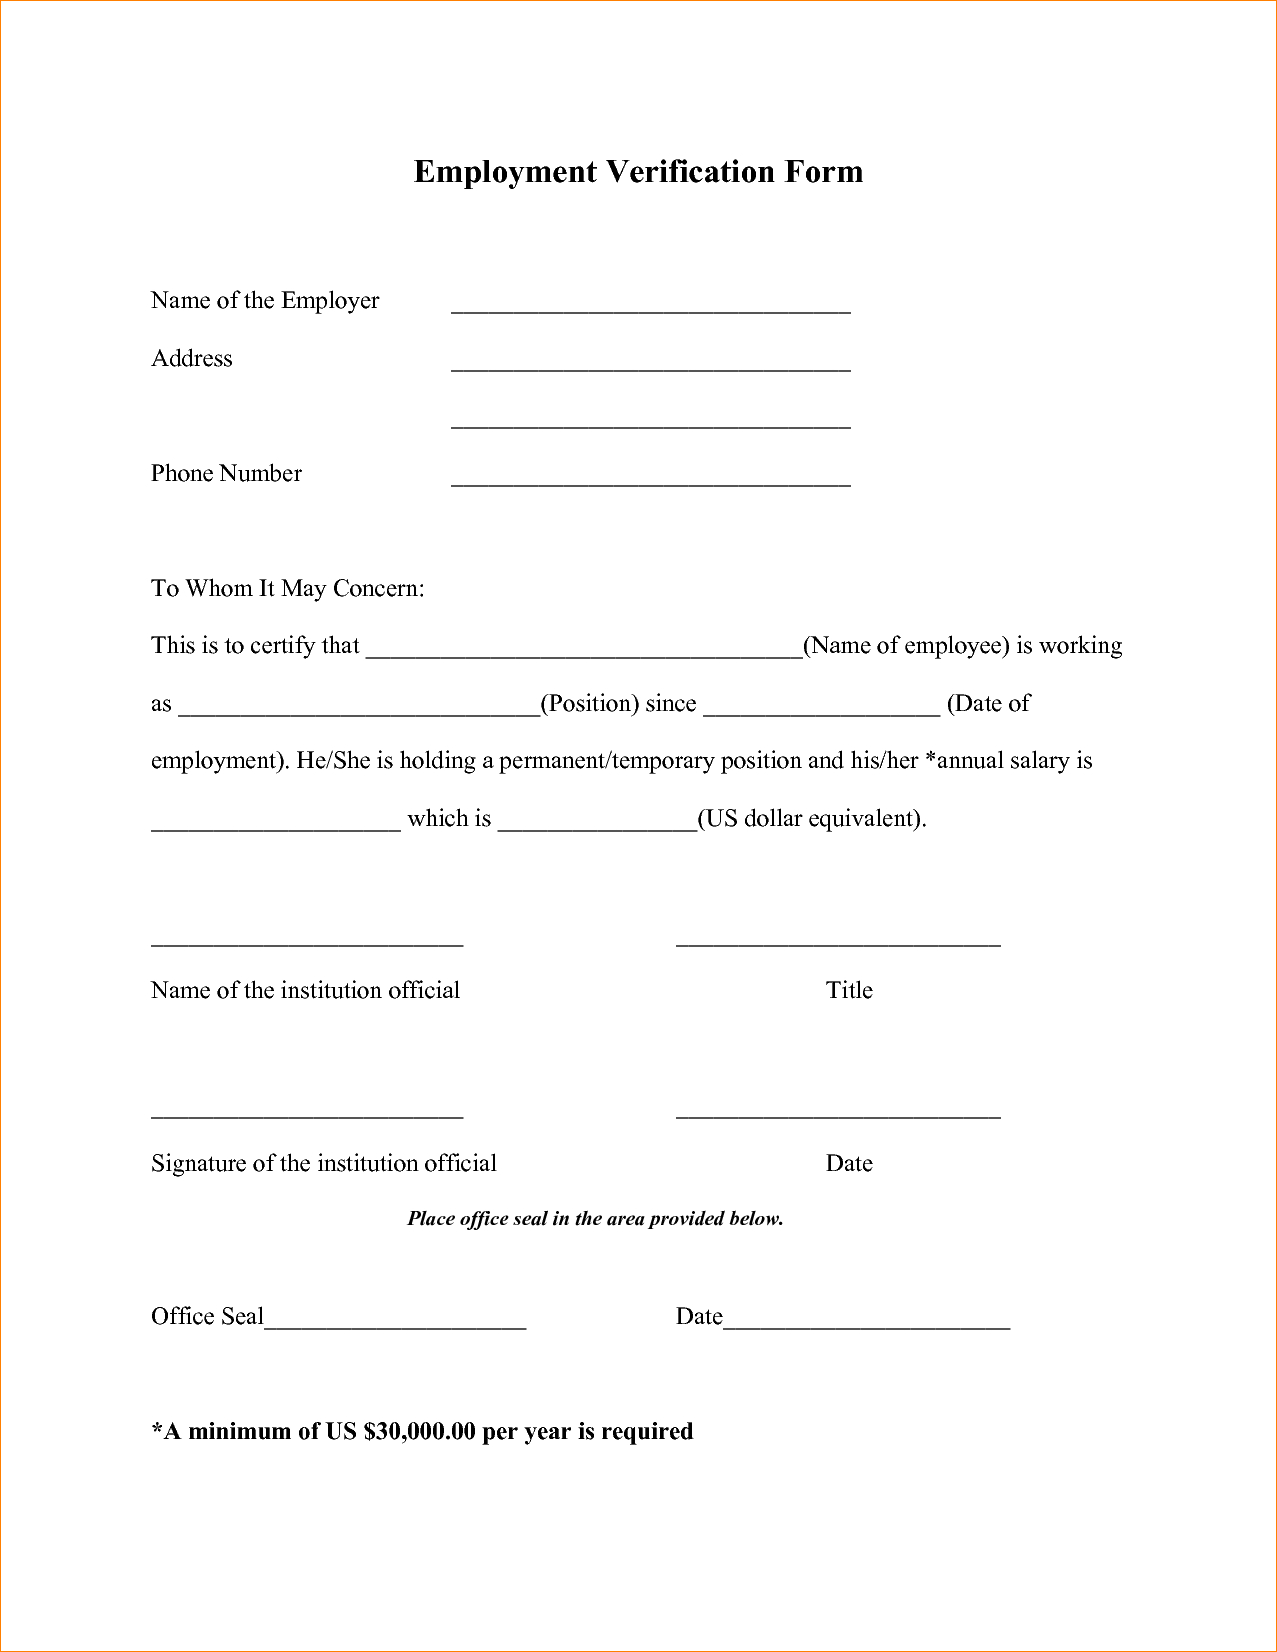 017 Letter Of Employment Offer Verification Form Templates